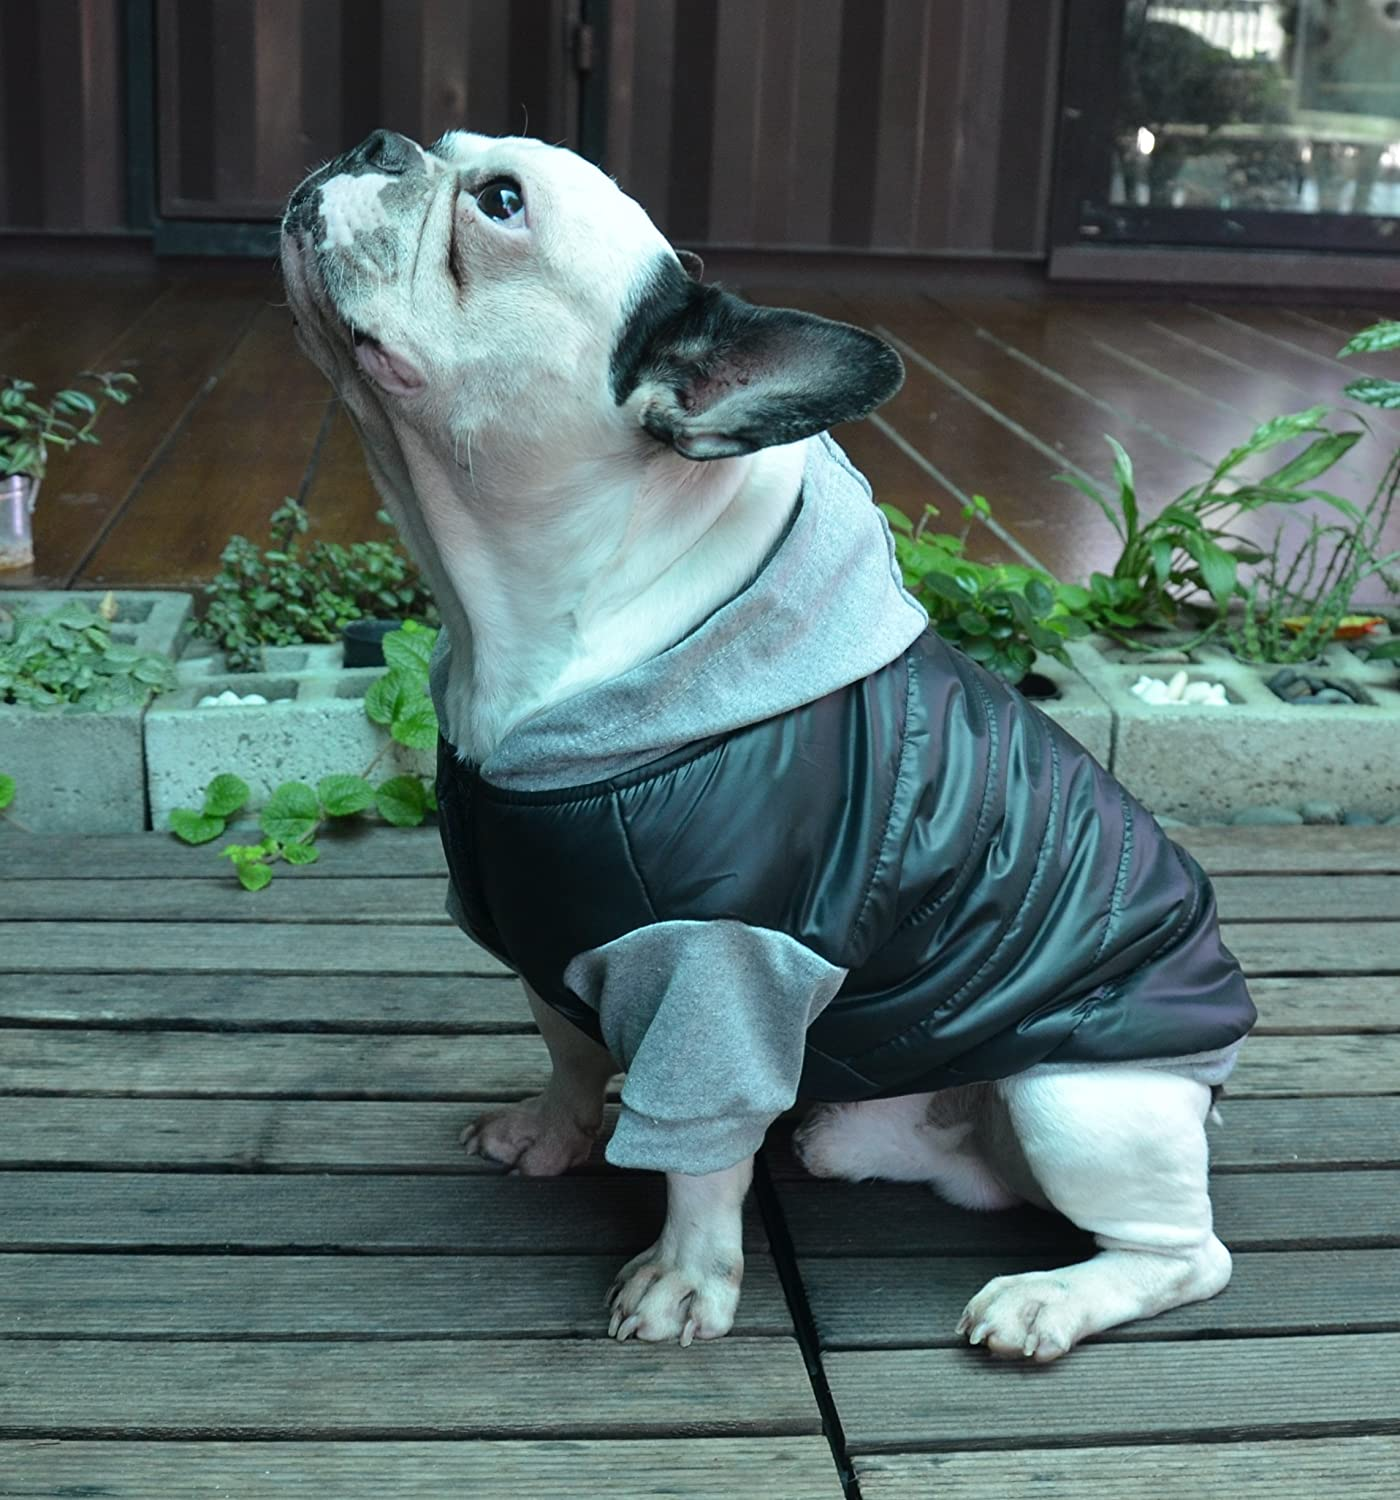 Doggydolly Winter Dog Cane Cappotto Giacca con Cappuccio per Carlino Bulldog Francese Nero Grigio Medium B0757DP7N2